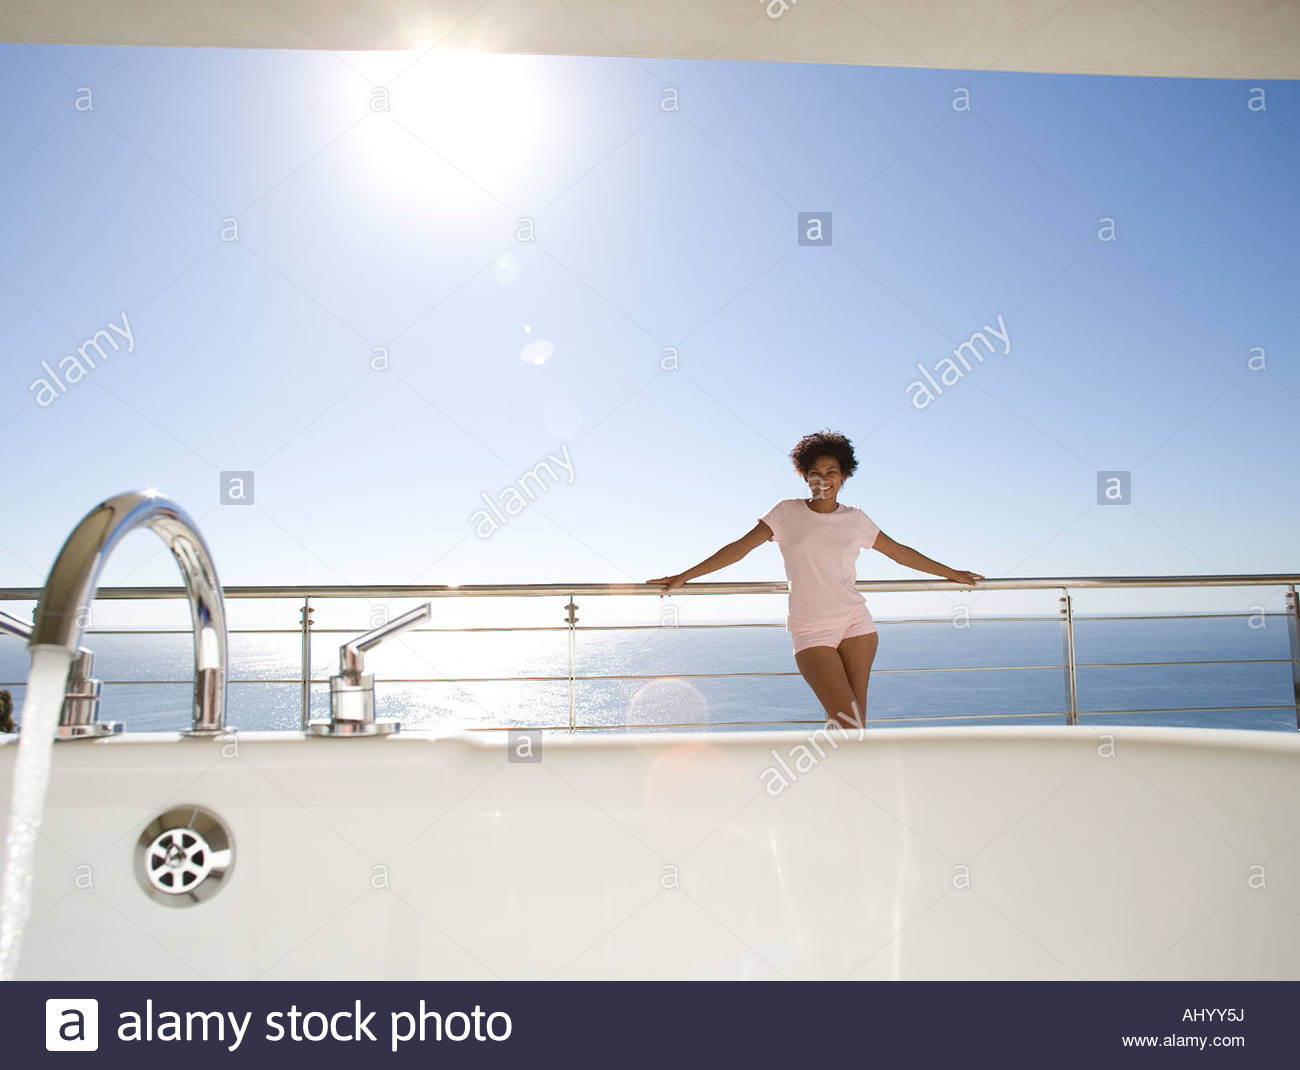 Young Women Standing On Balcony Stock Photos & Young Women Standing ...